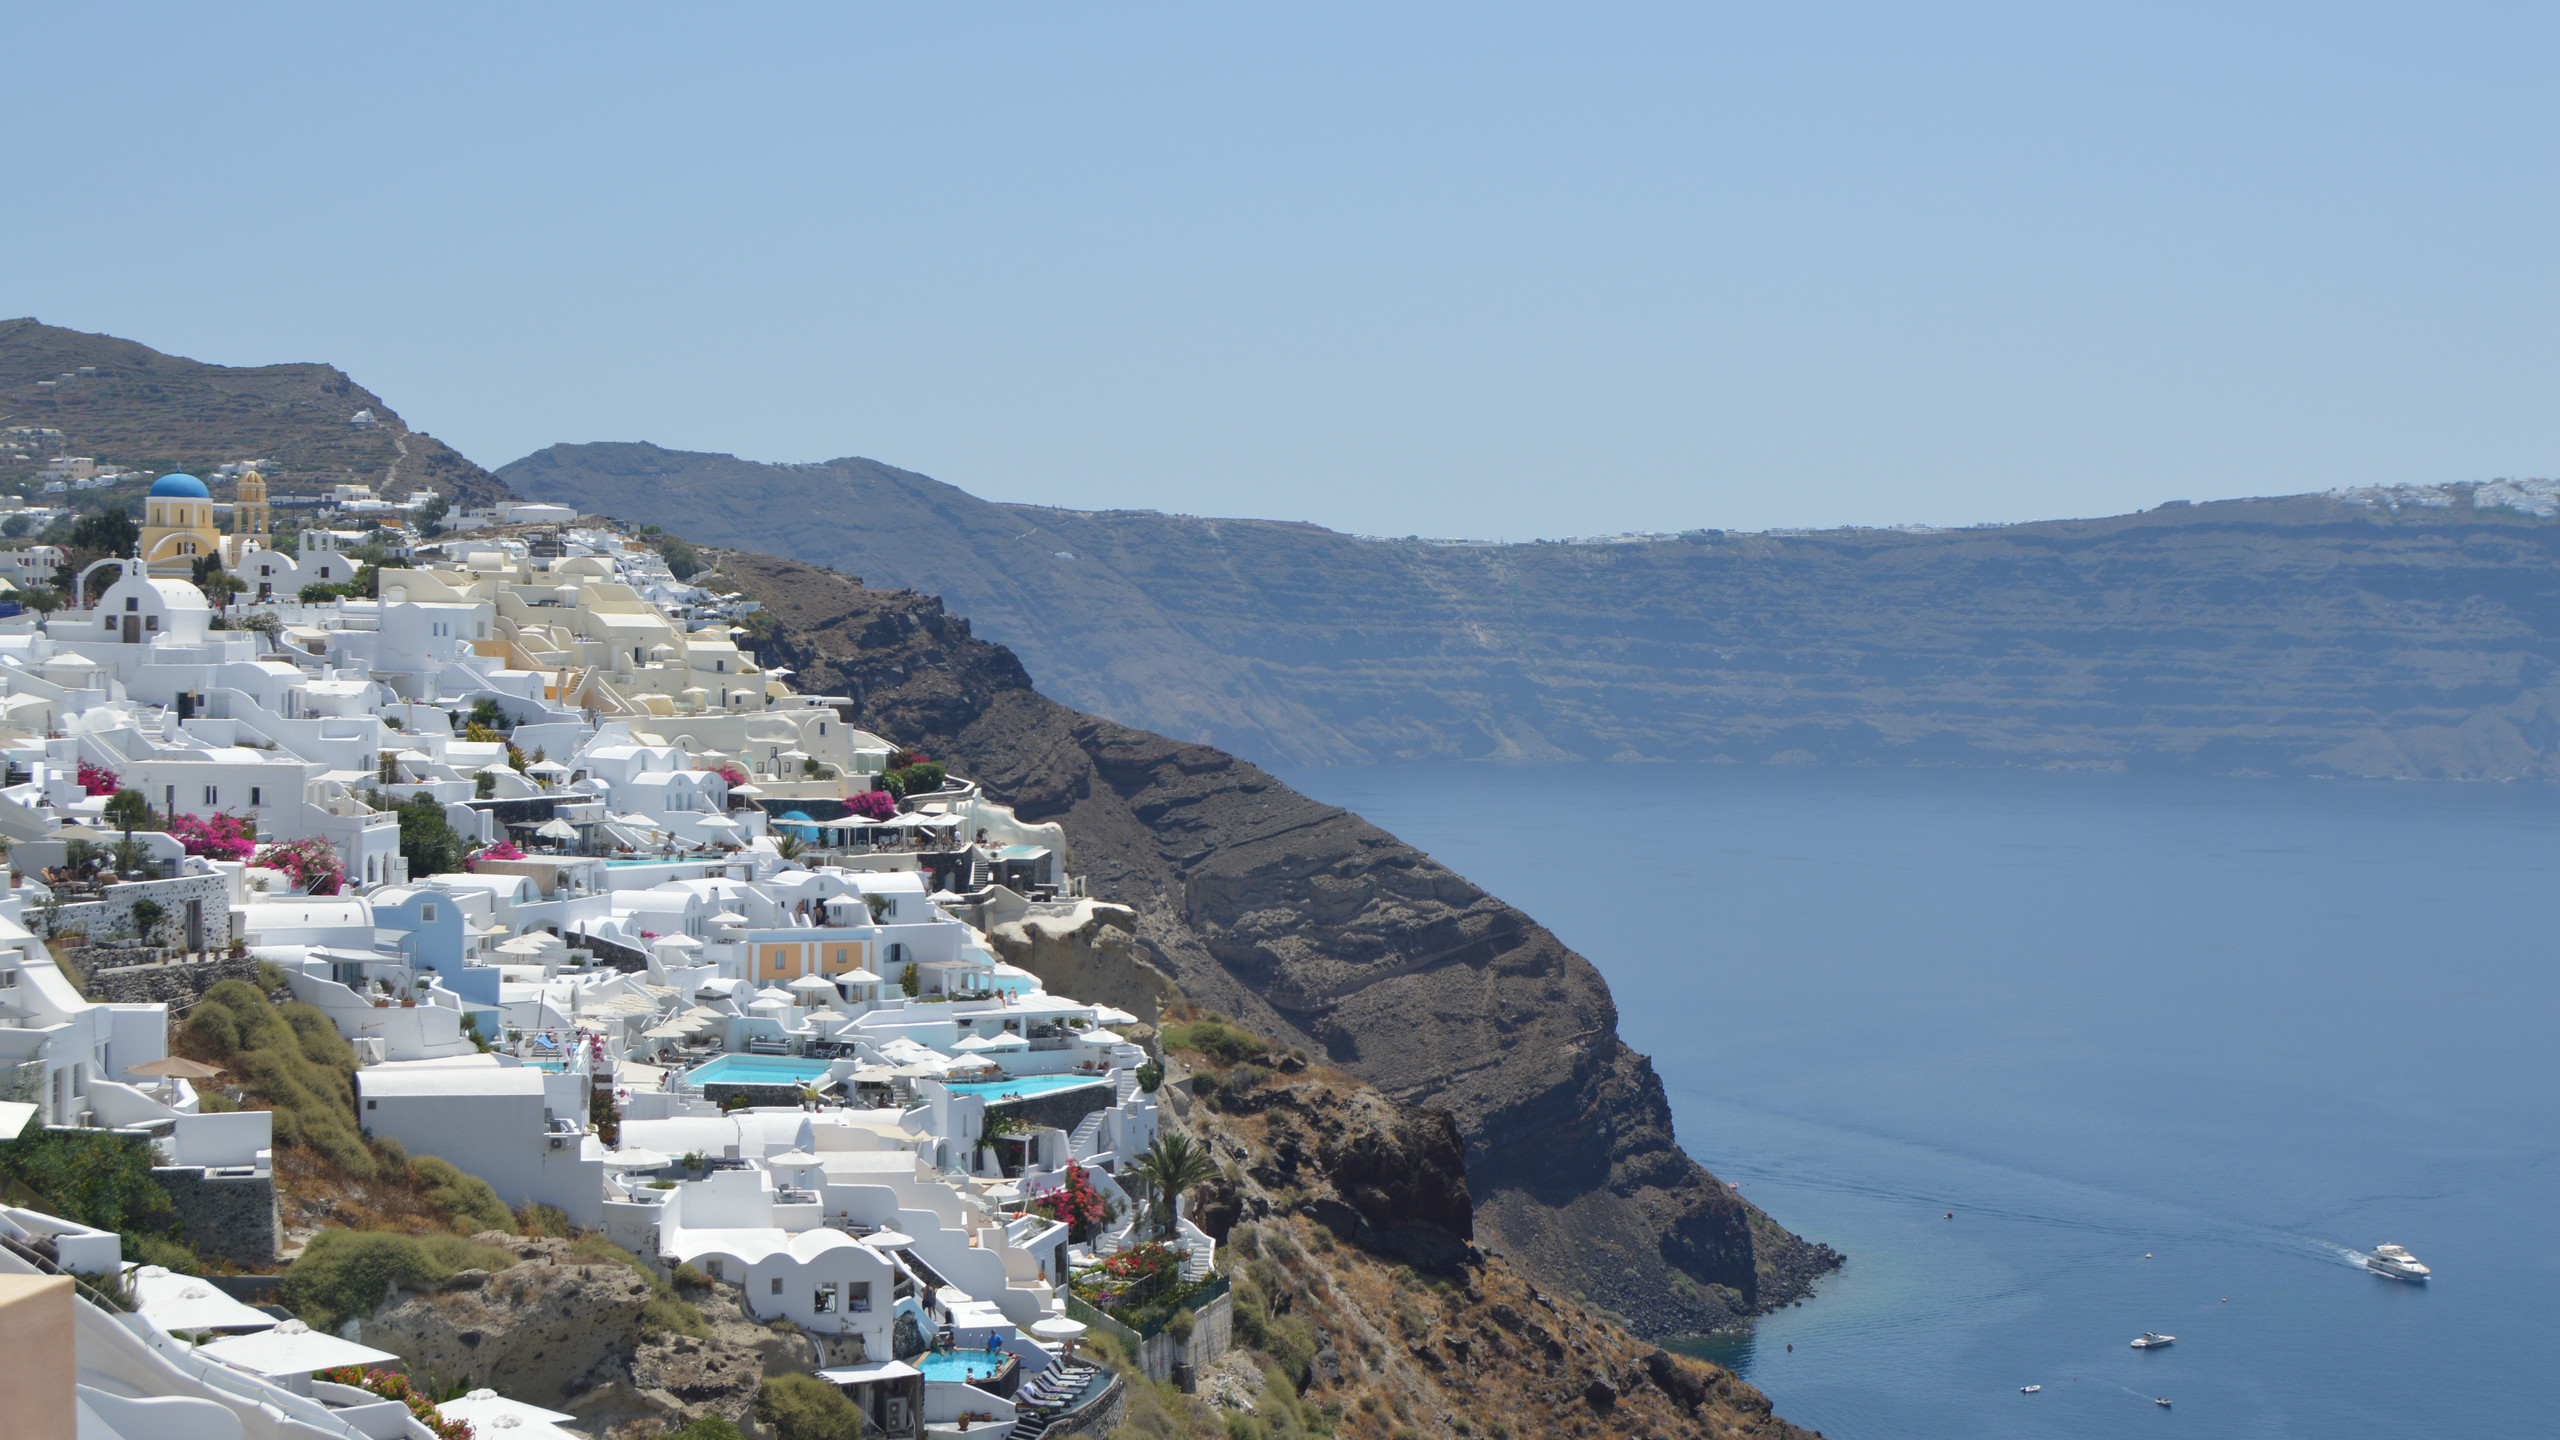 Oia- The view